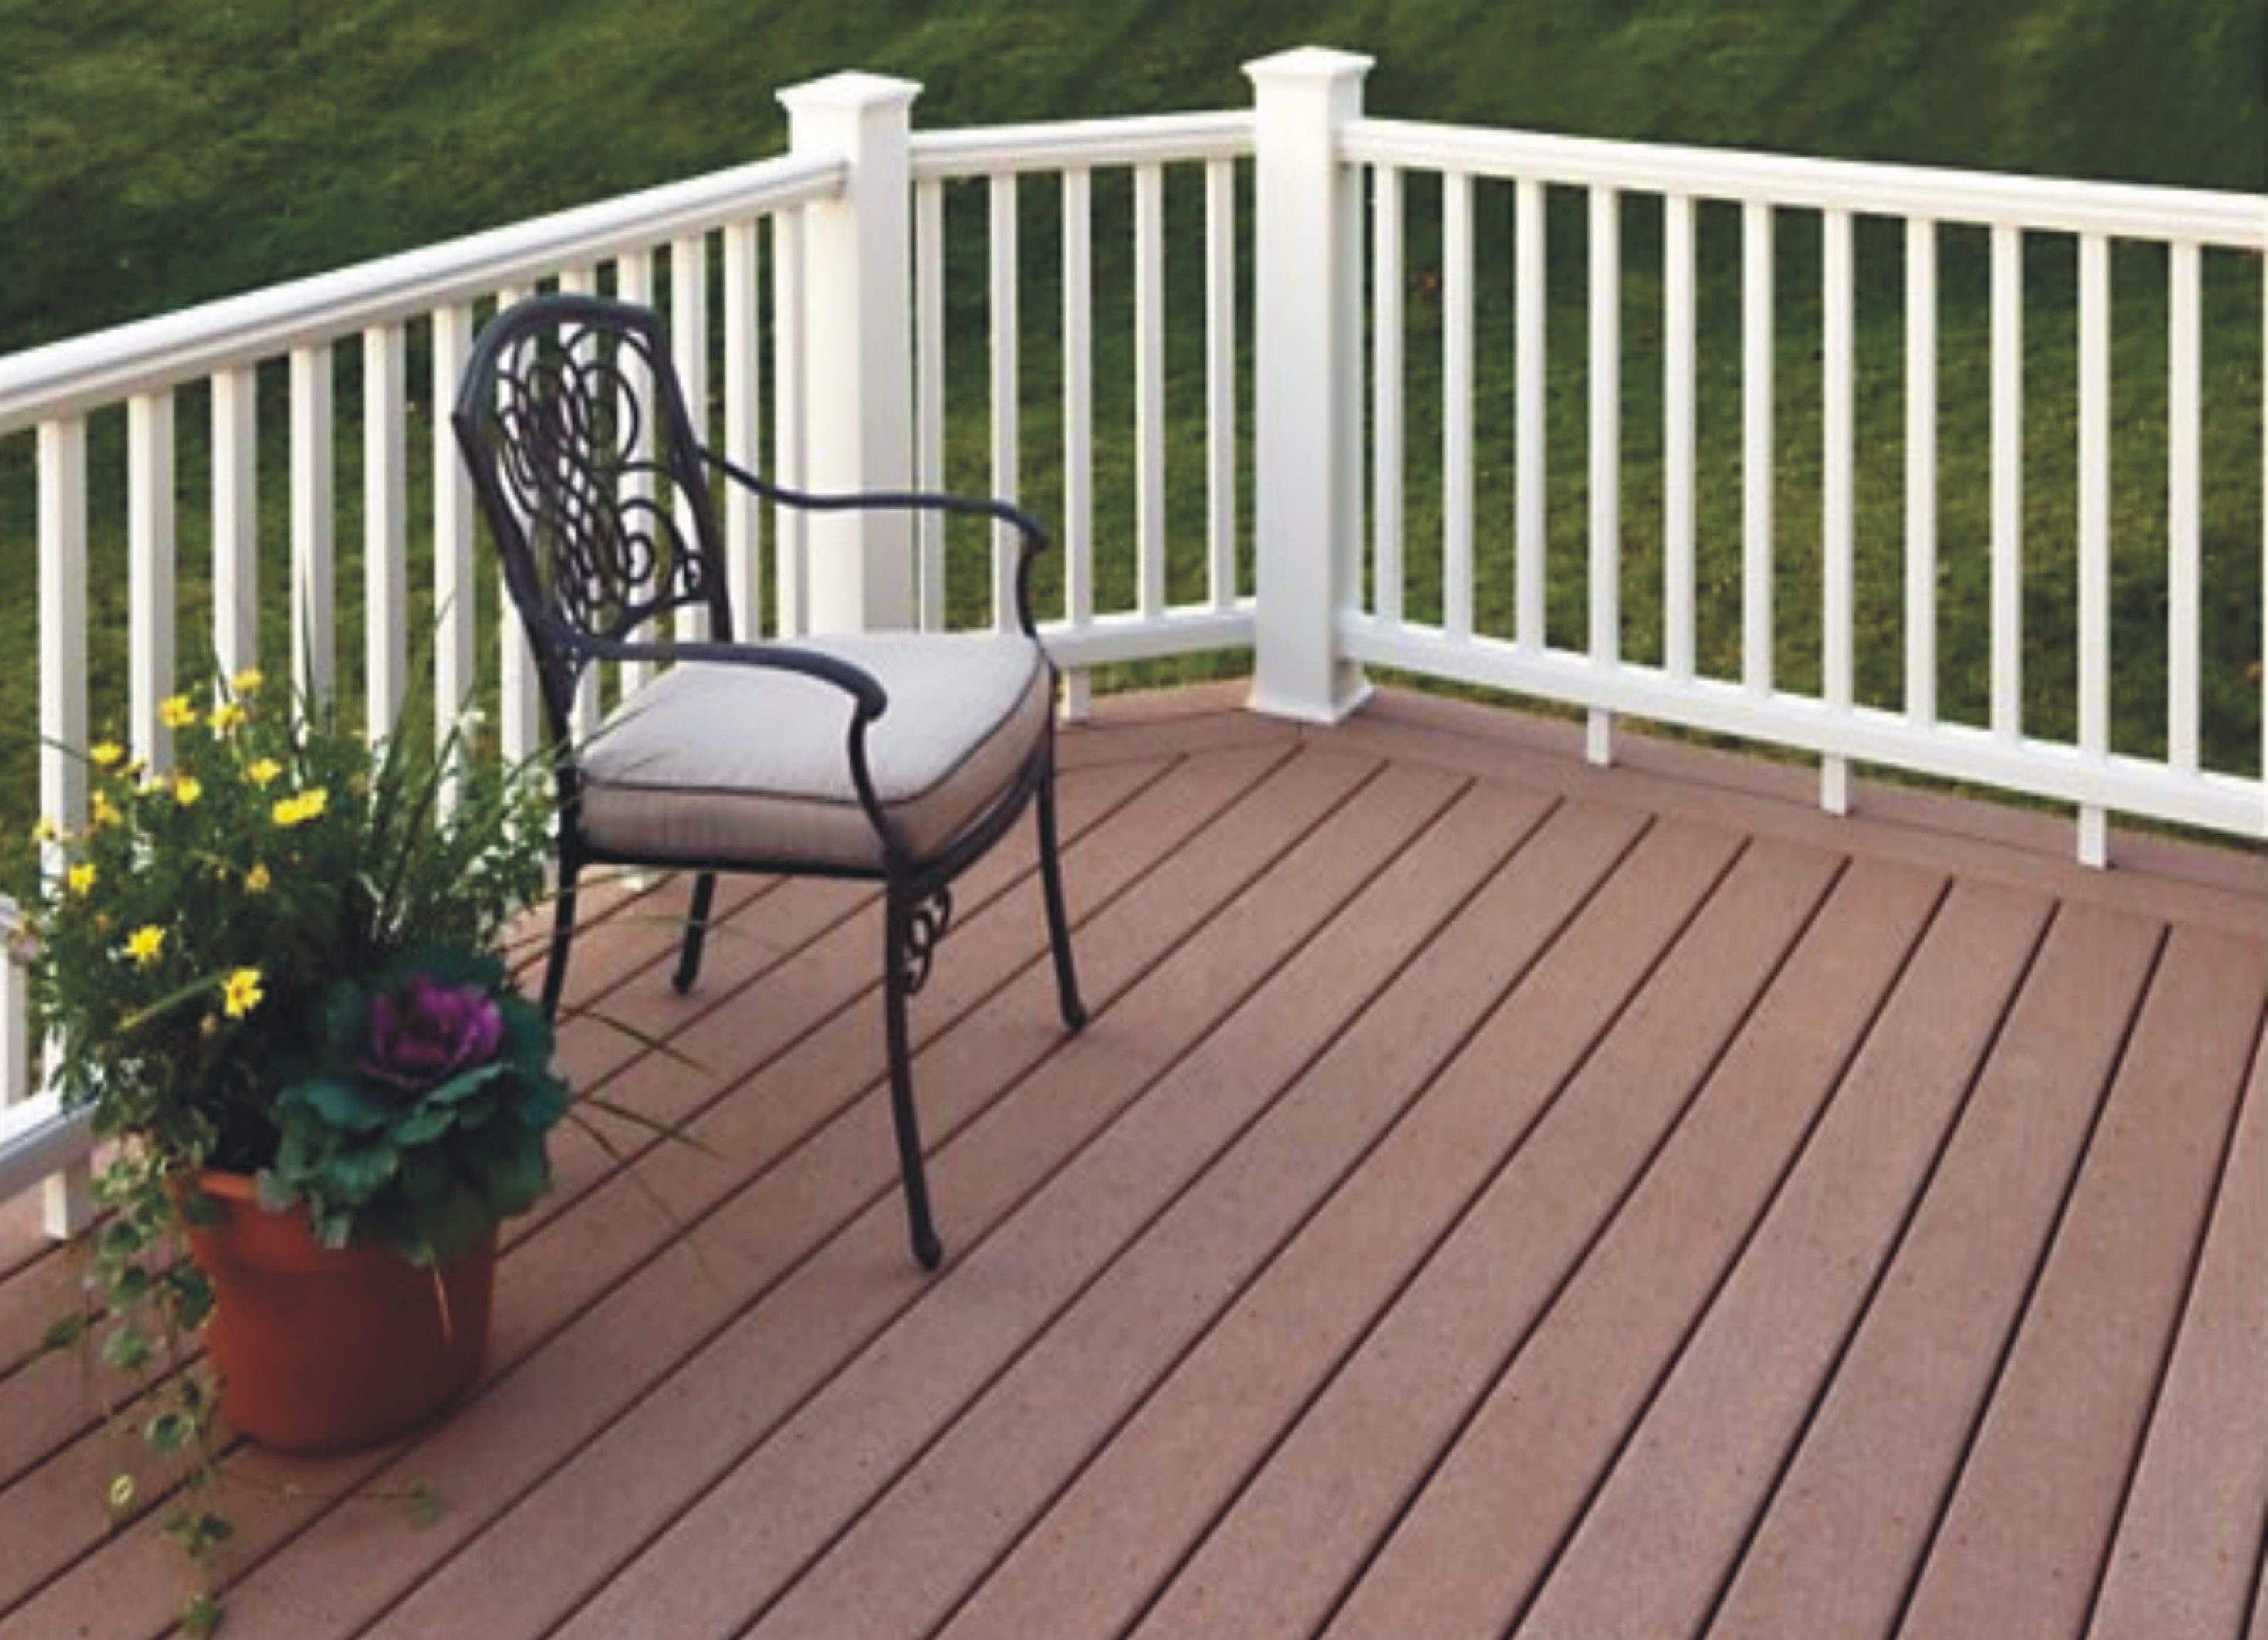 Wpc Composite Terrace Paving Board Outdoor Wall Panels Decking Suppliers Outdoor